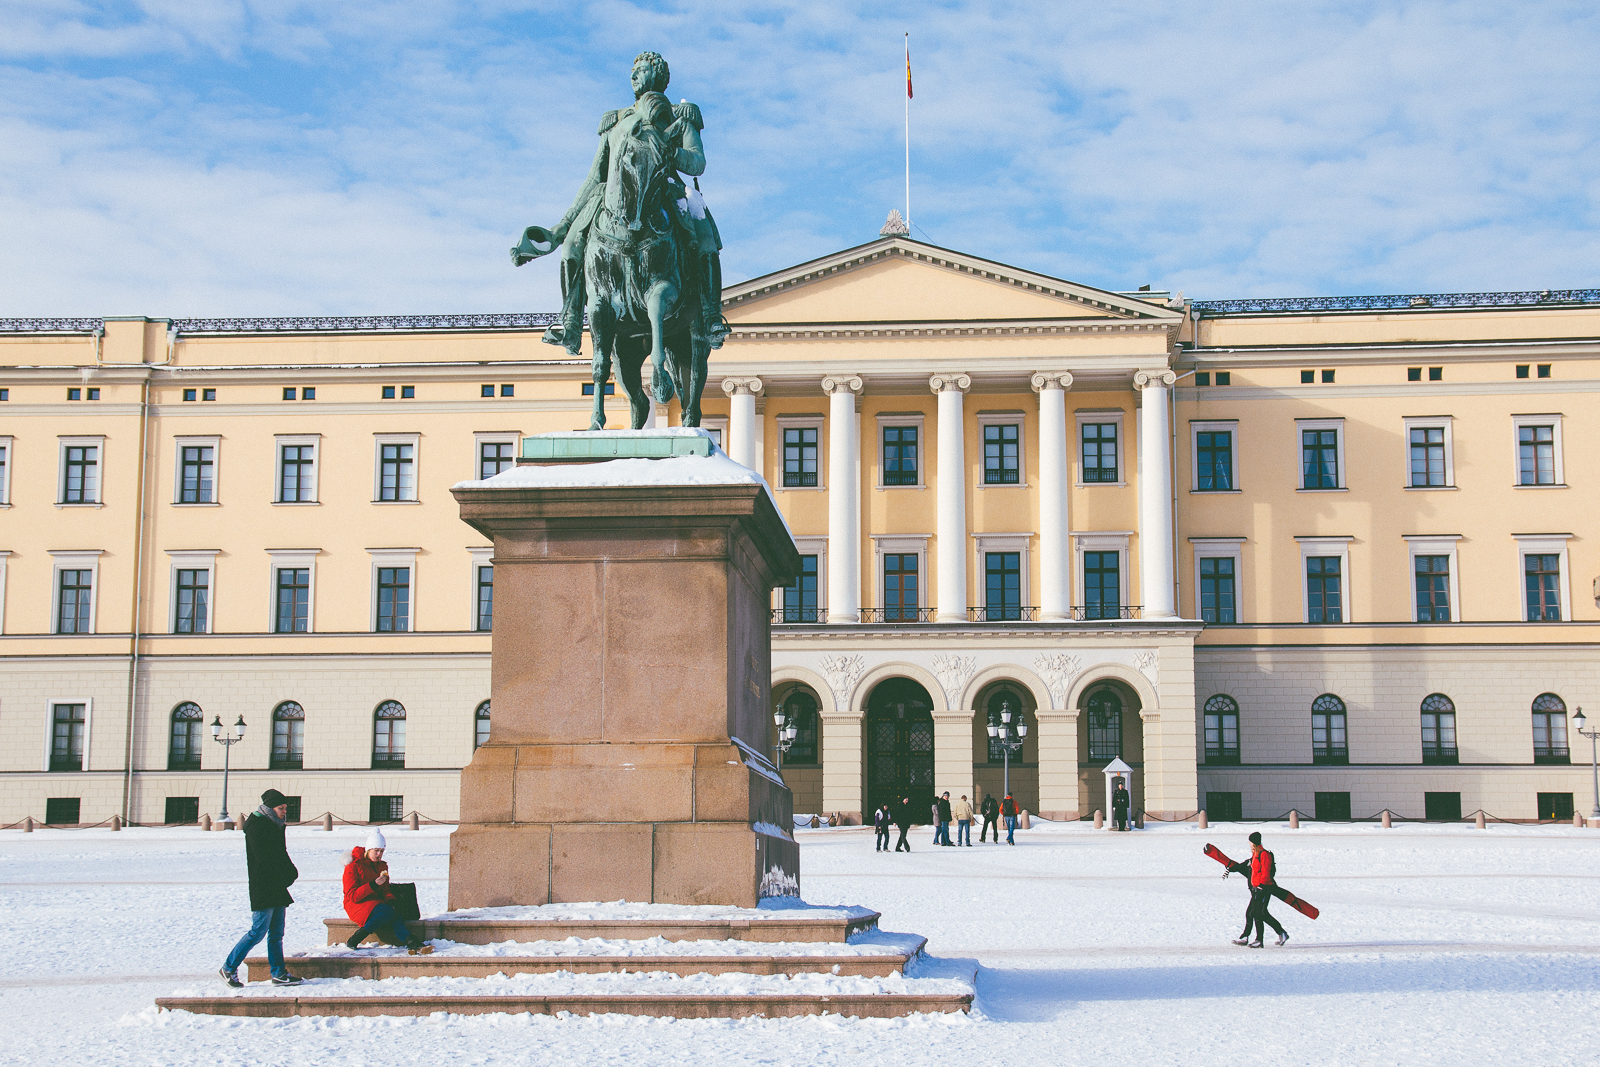 The Royal Palace, Oslo (Feb. 19, 2011)